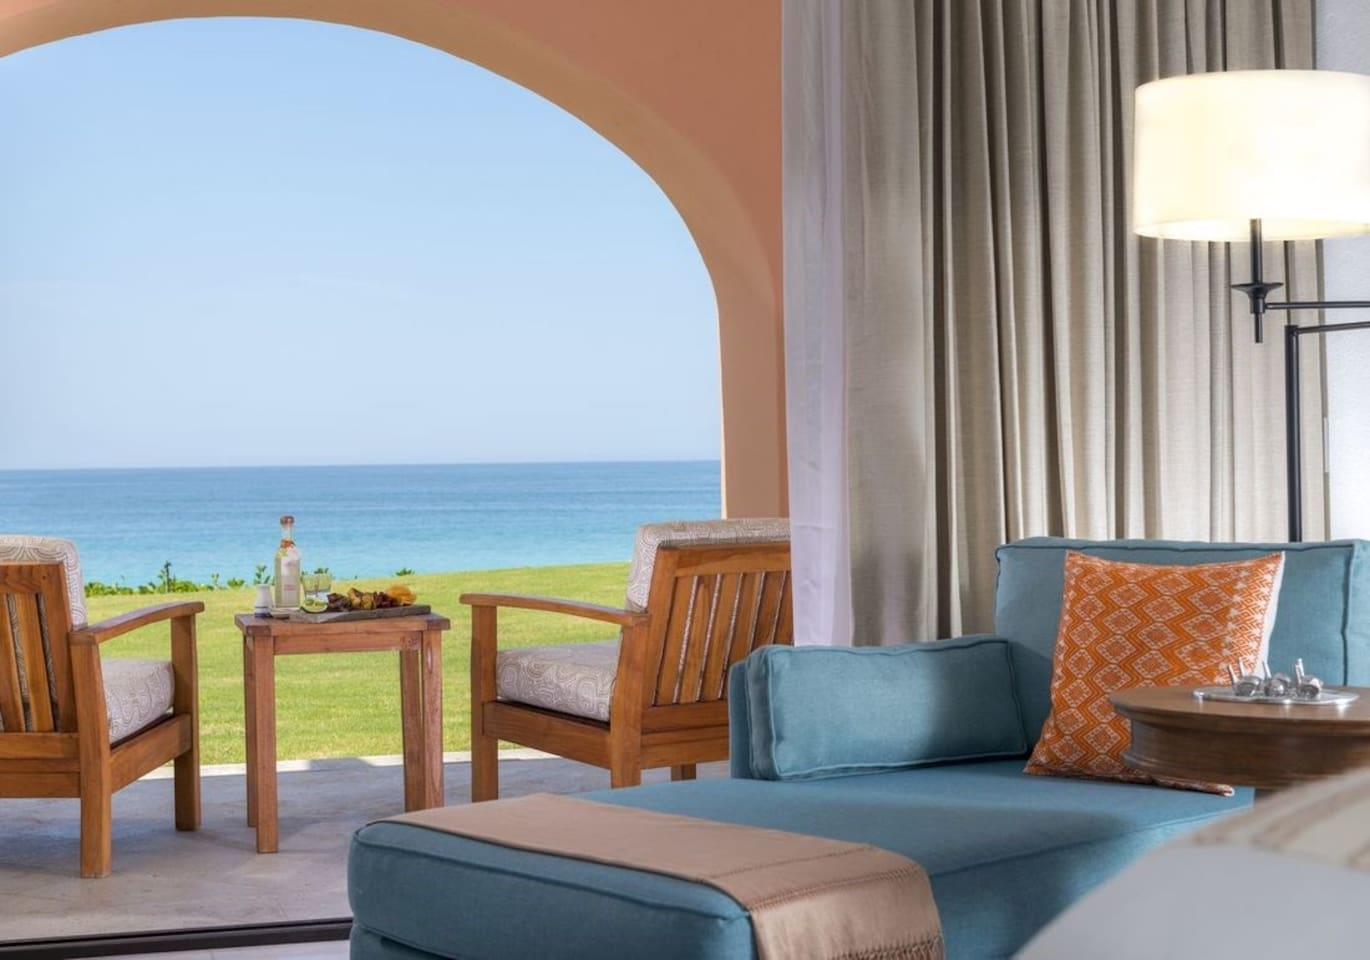 Sit back and relax in our bright and elegant Los Cabos Retreat with ocean views!